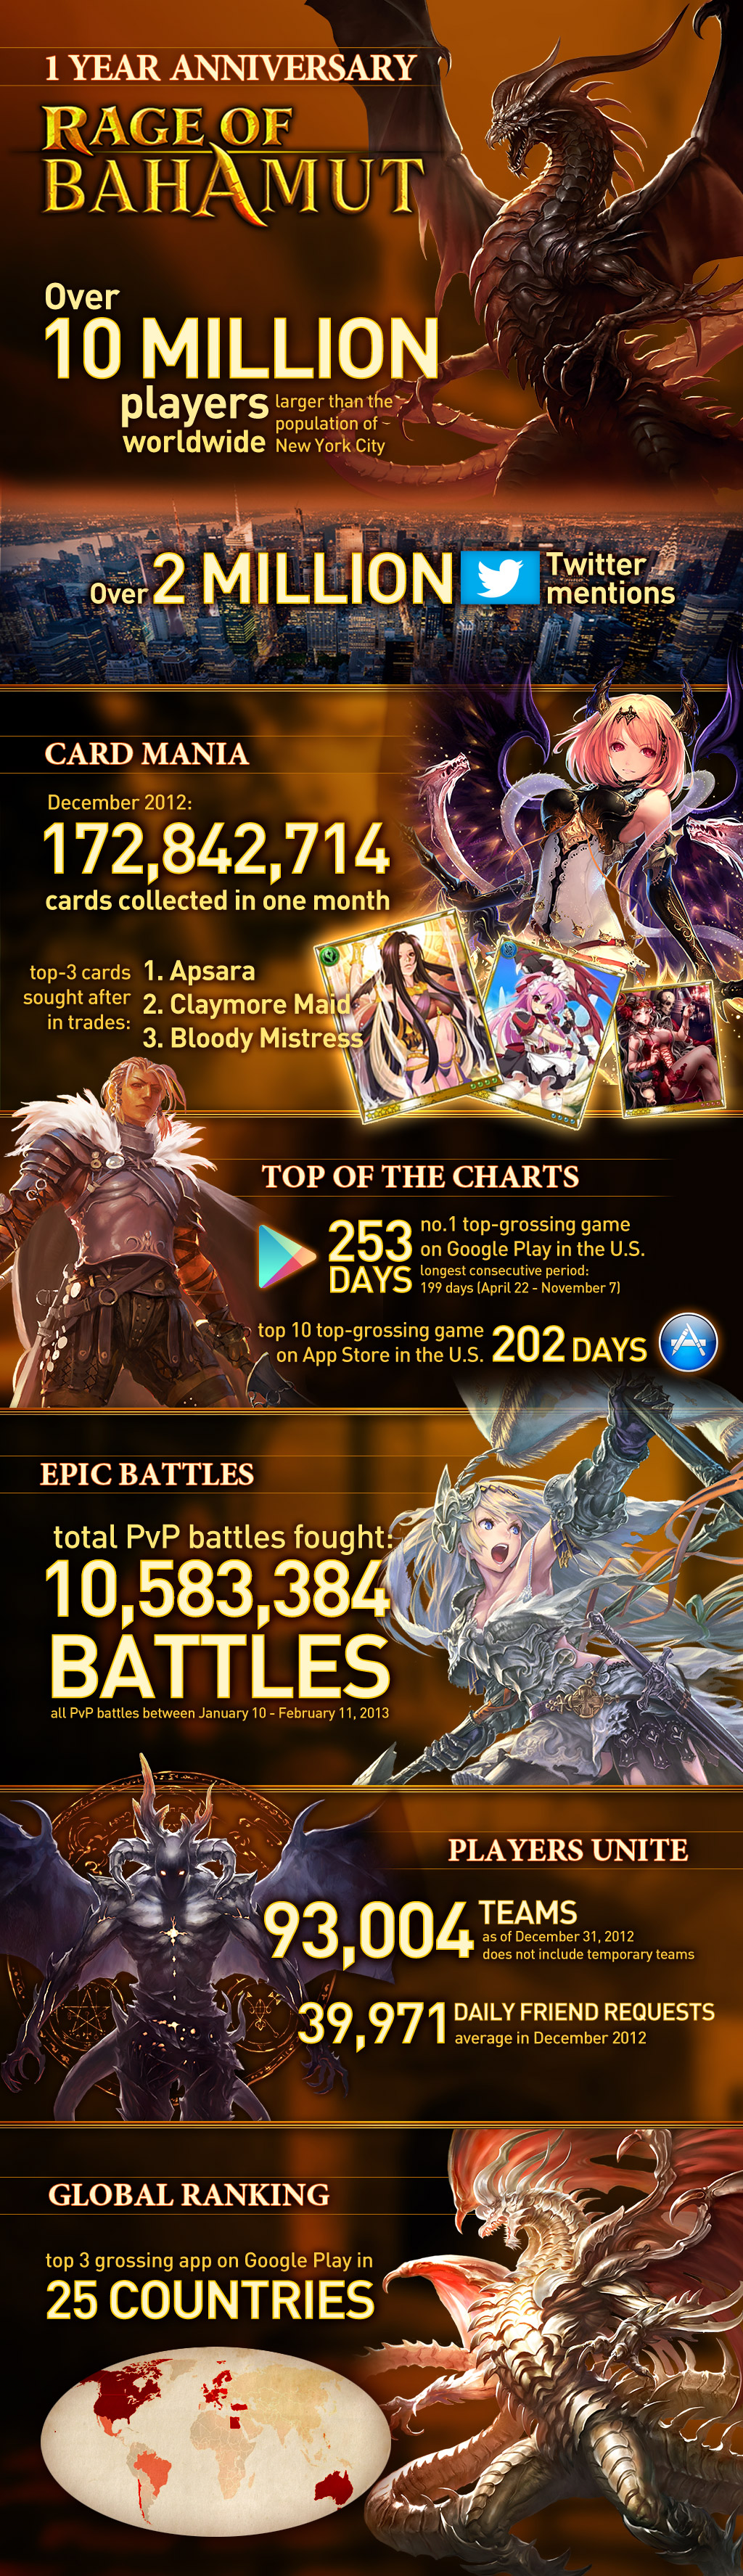 Rage of Bahamut_Infographic